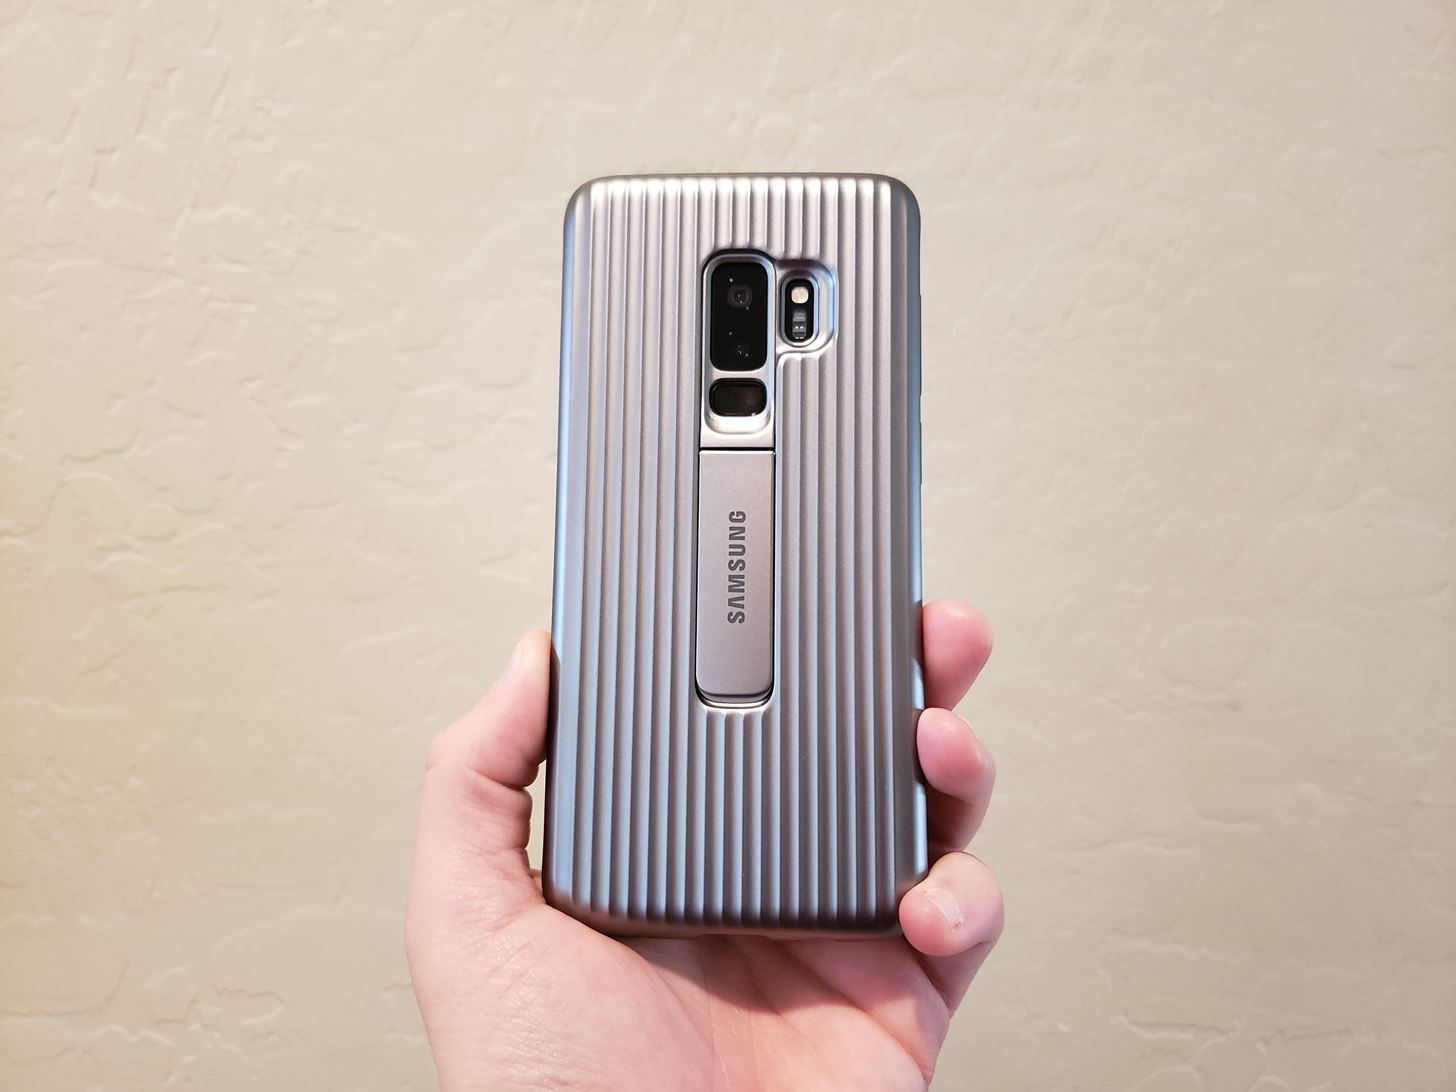 Hands-on with Samsung's Official OEM Cases for the Galaxy S9